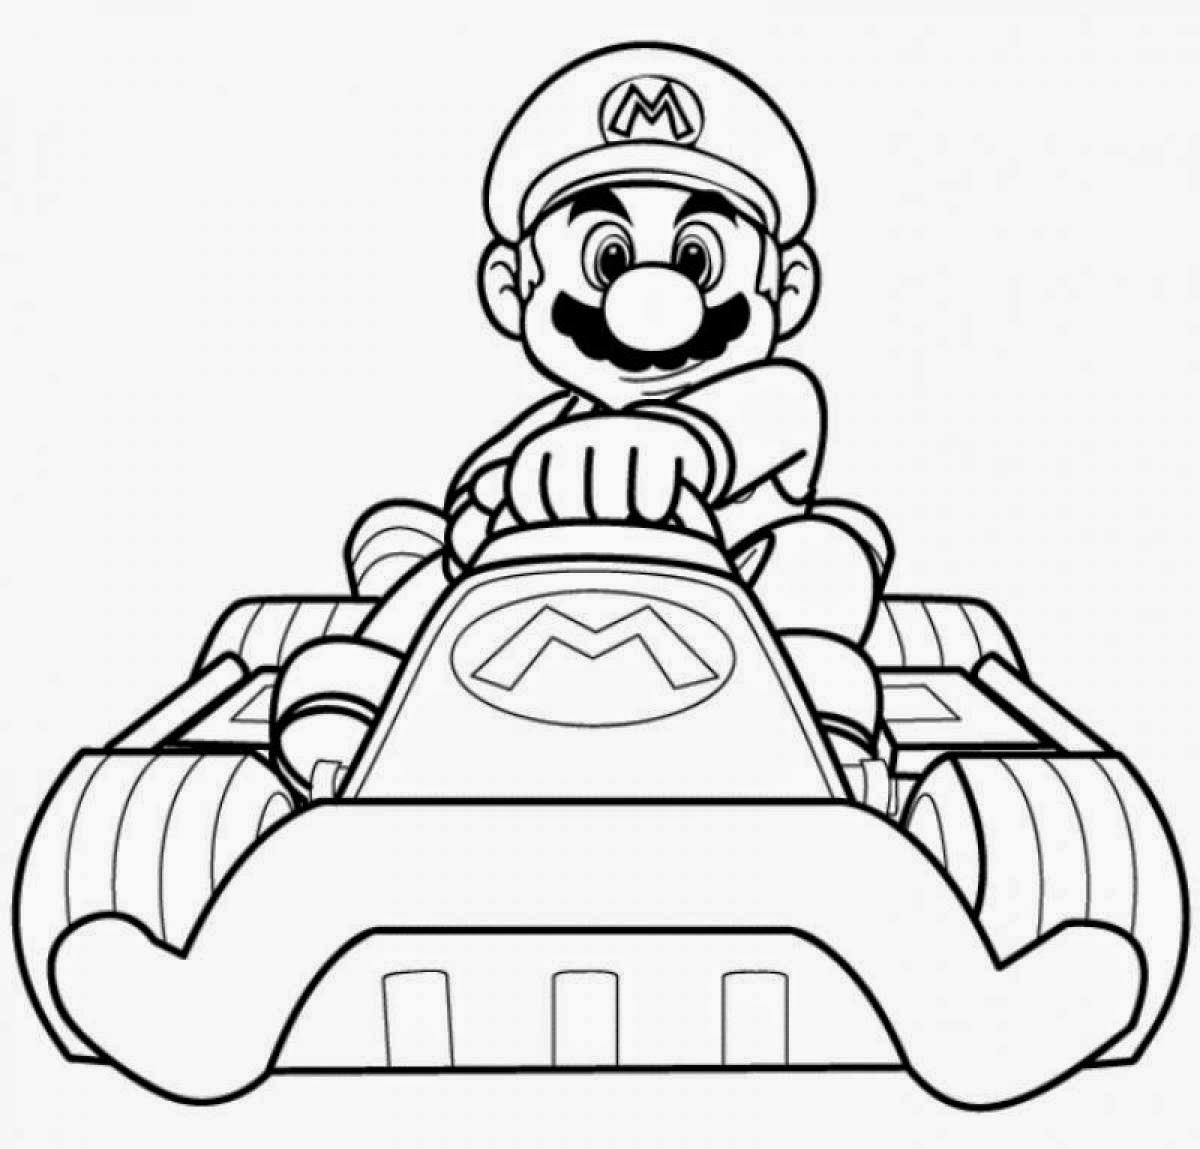 Mario Coloring Pages Printable Printable Of Super Mario Coloring Pages Bonnieleepanda Gallery